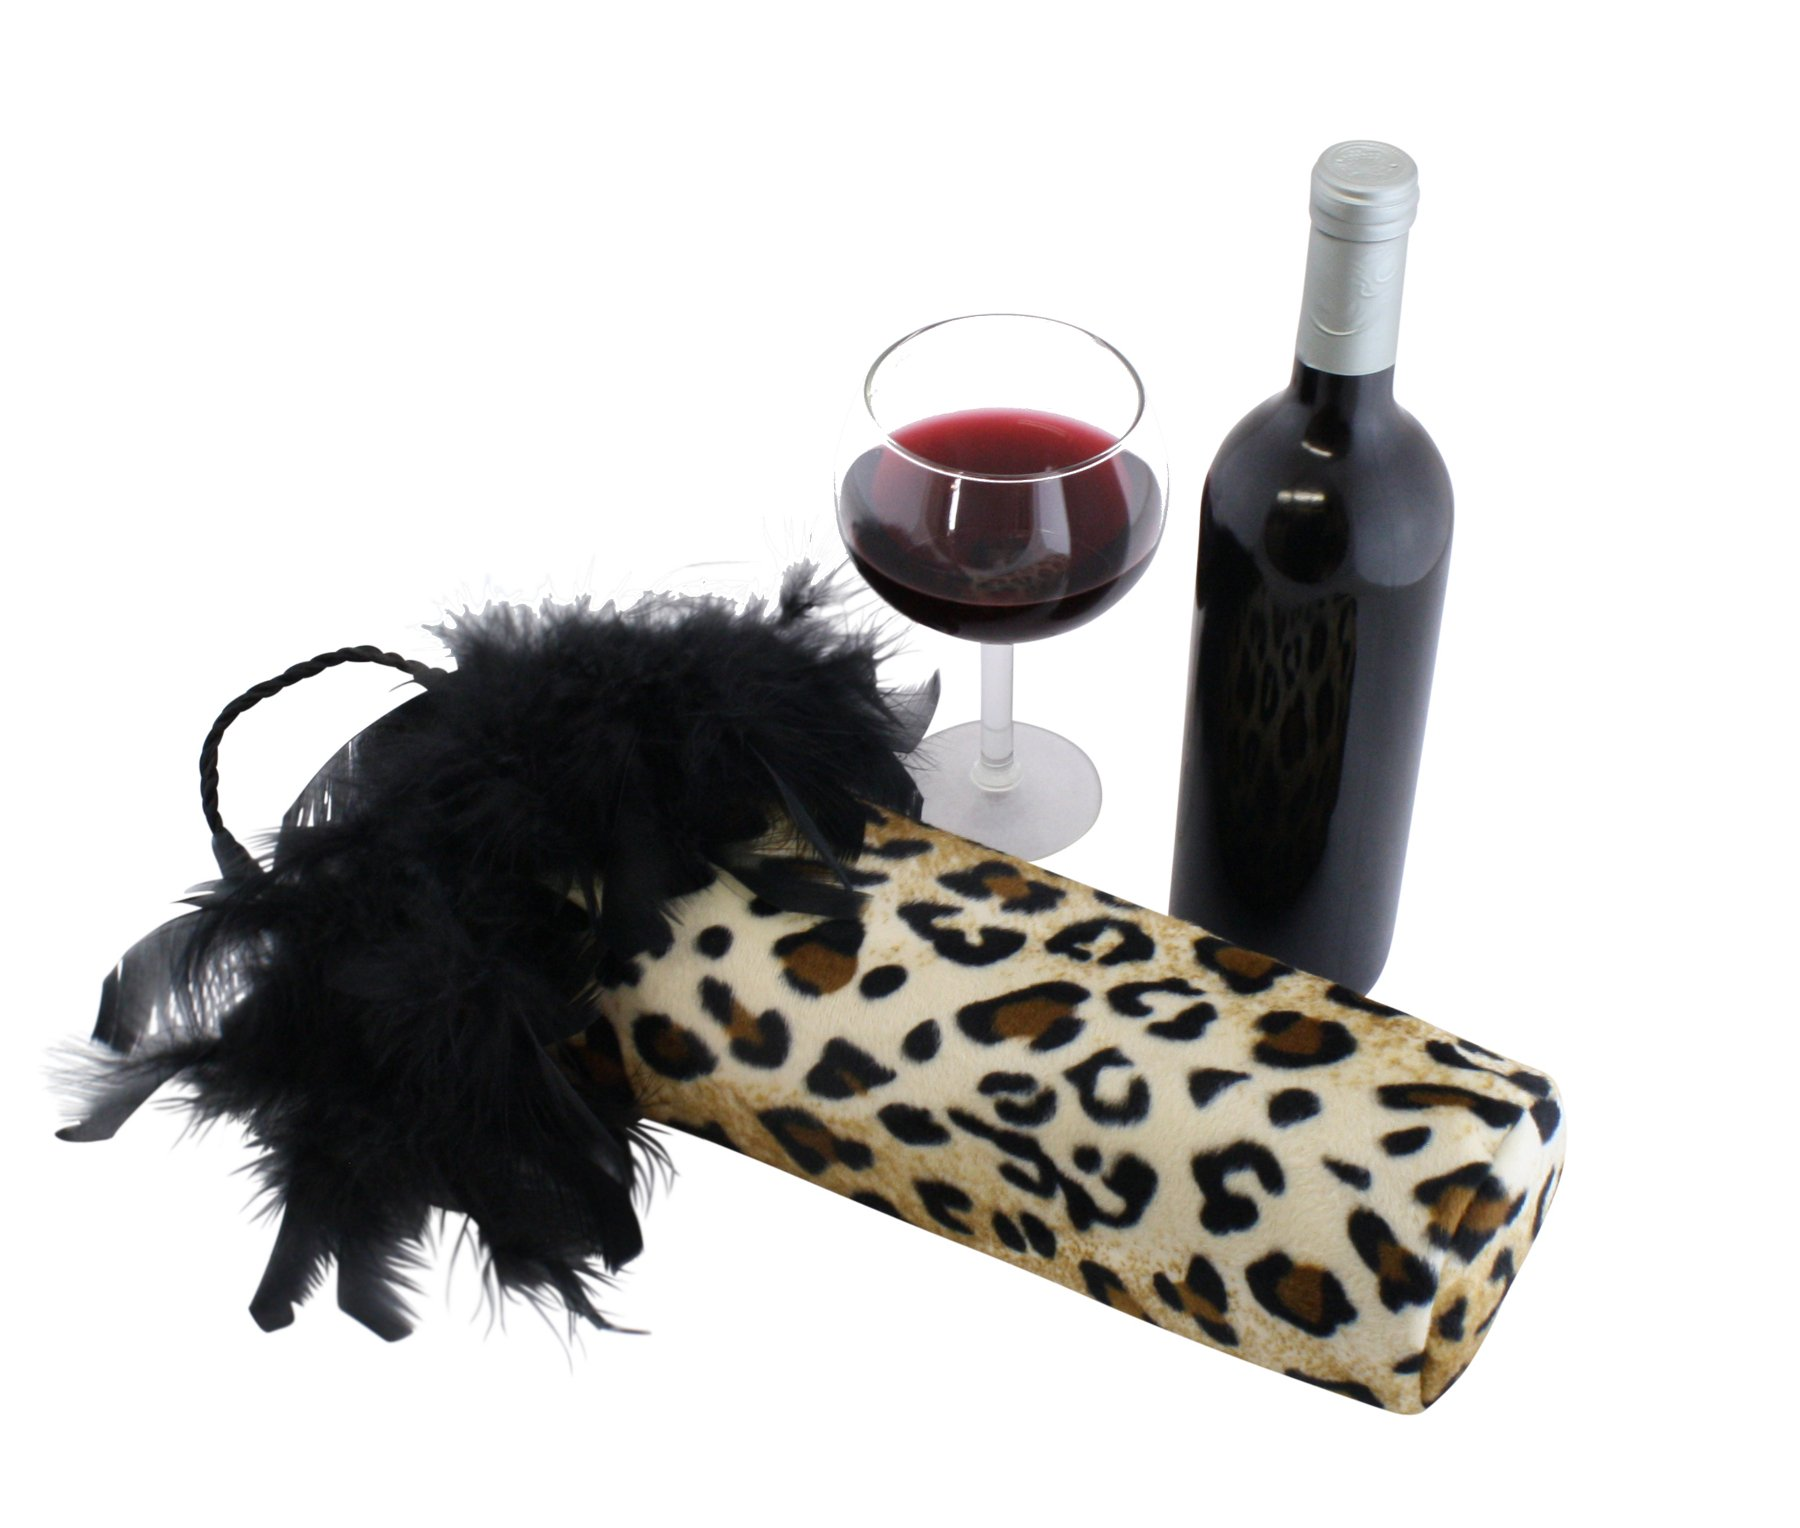 Cheetah Animal Print Fancy Wine Bags, Fur Wine Bottle Bags, Leopard Fabric Bottle Covers with Black Feathers - Cheetah Wine Accessories and Gifts - Perfect Wine Gifts for Women